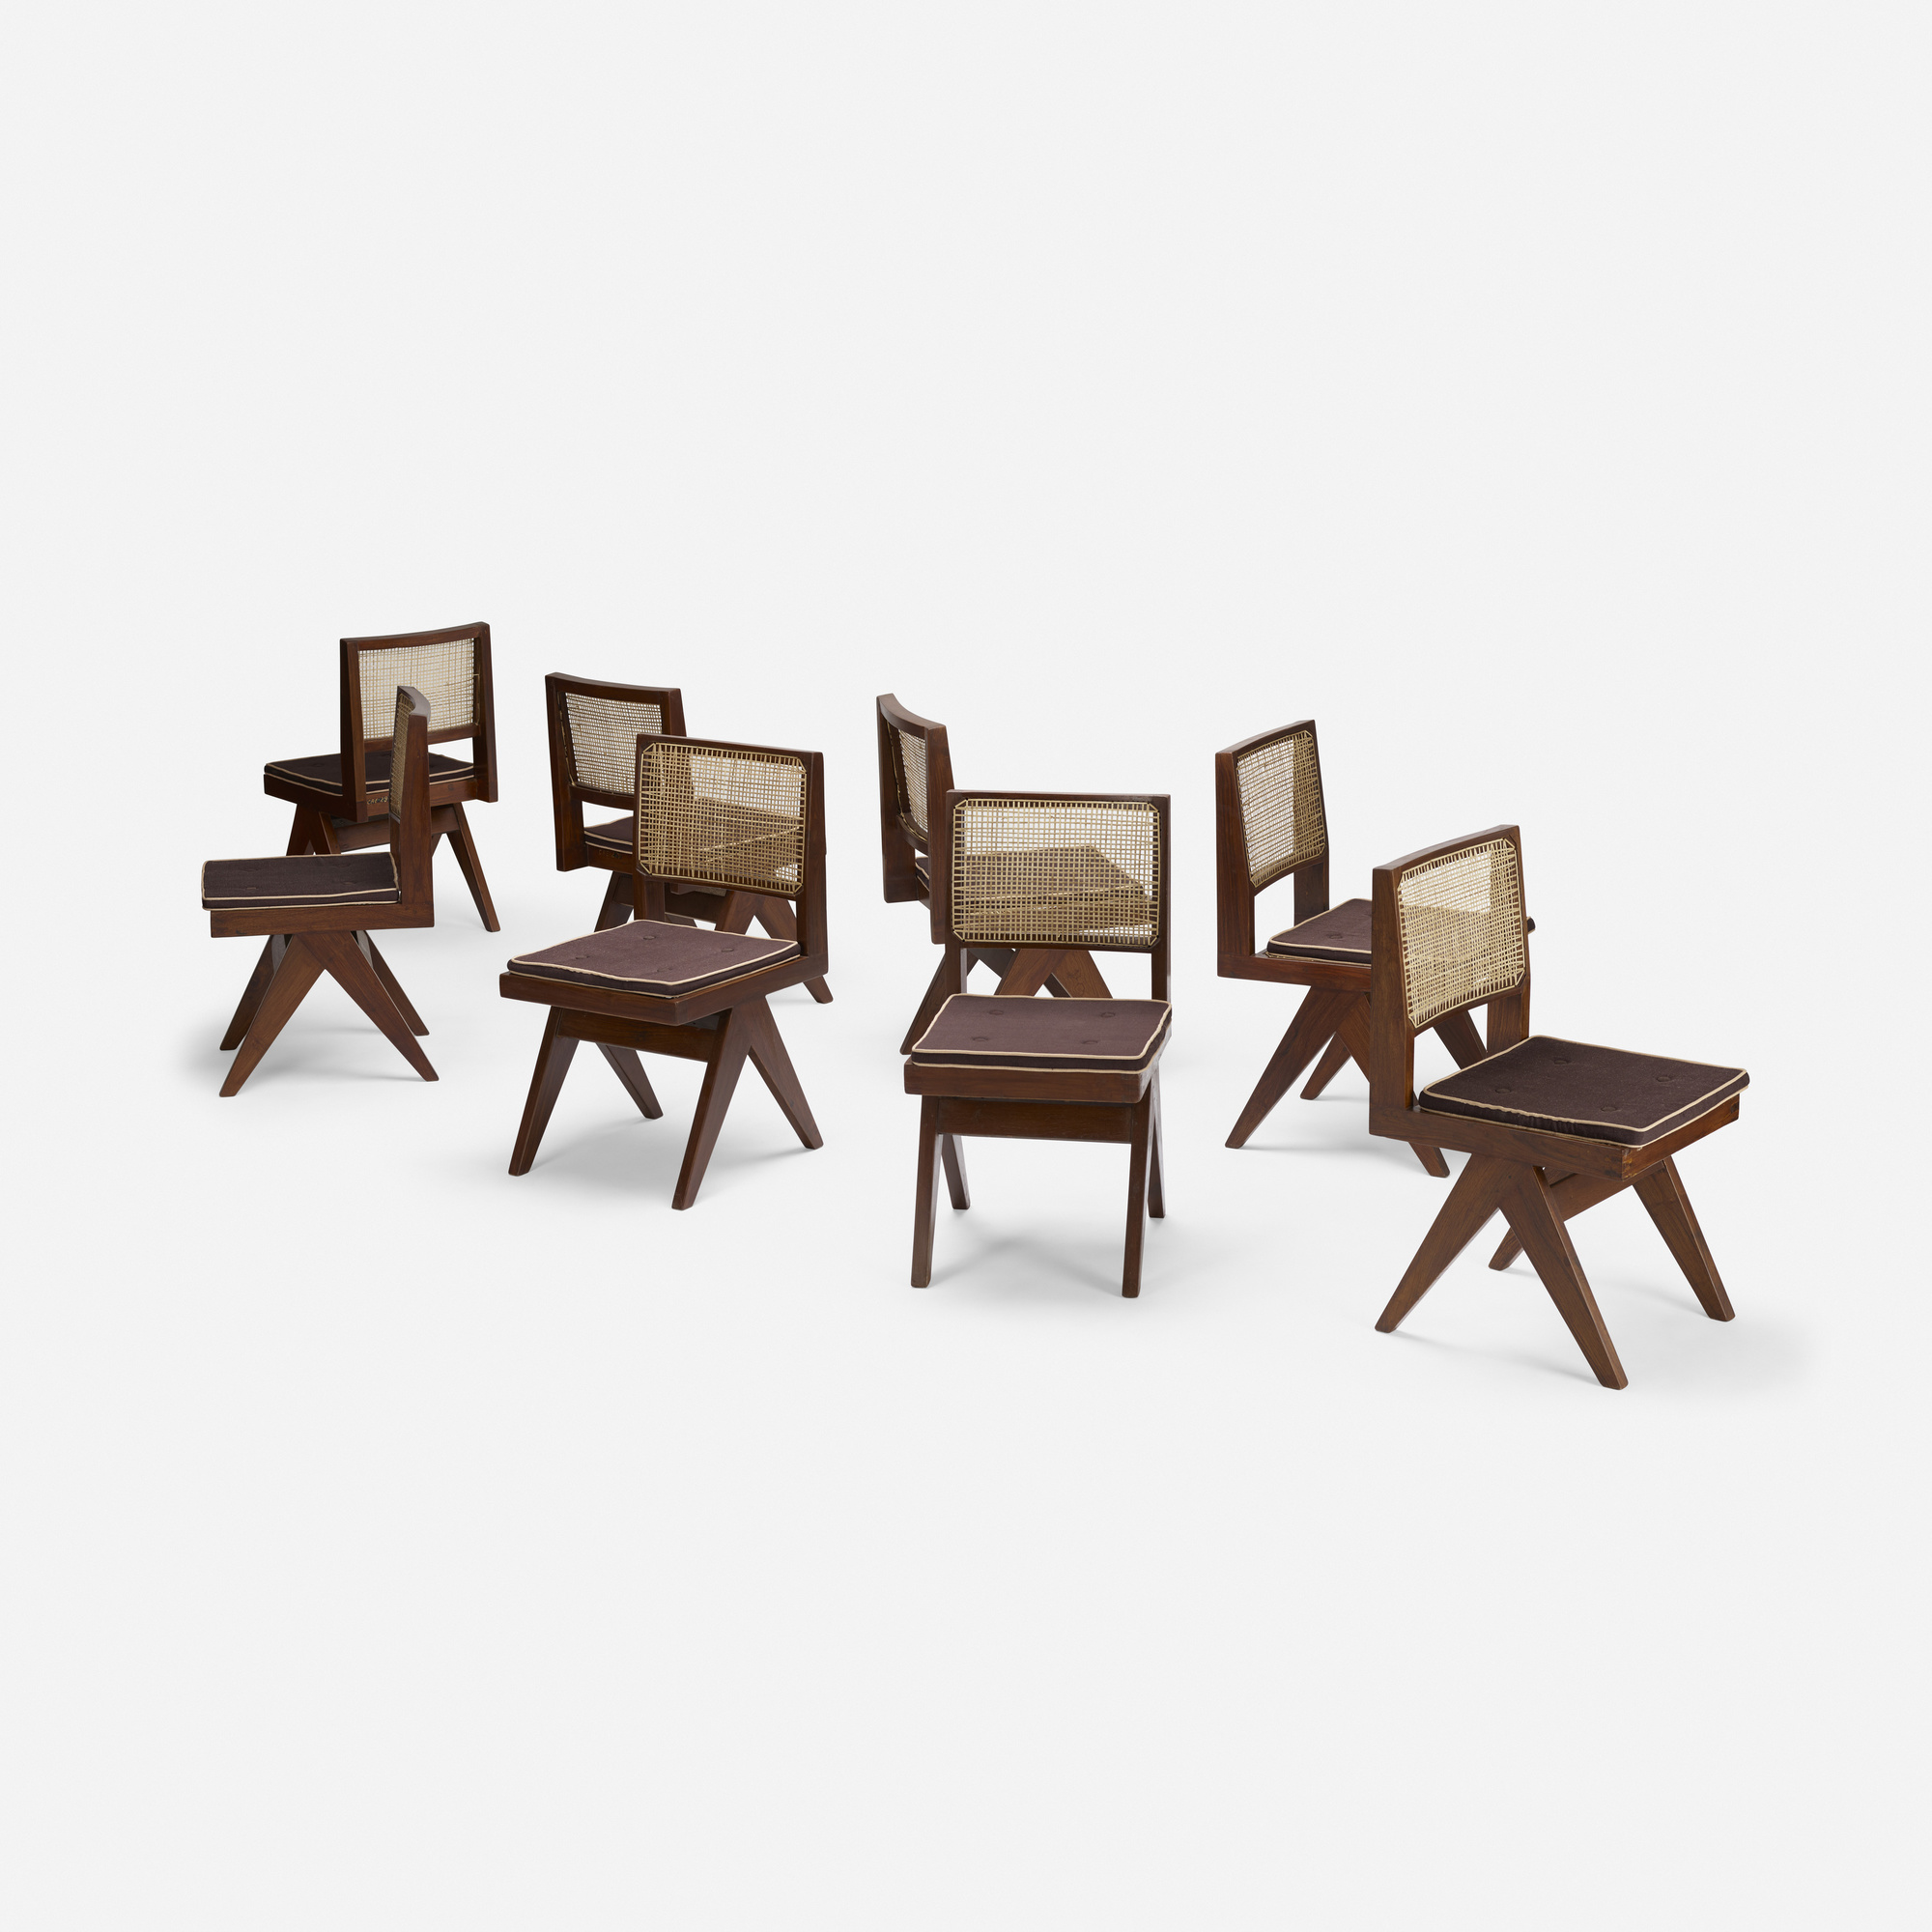 104: Pierre Jeanneret / set of eight chairs from Chandigarh (1 of 4)